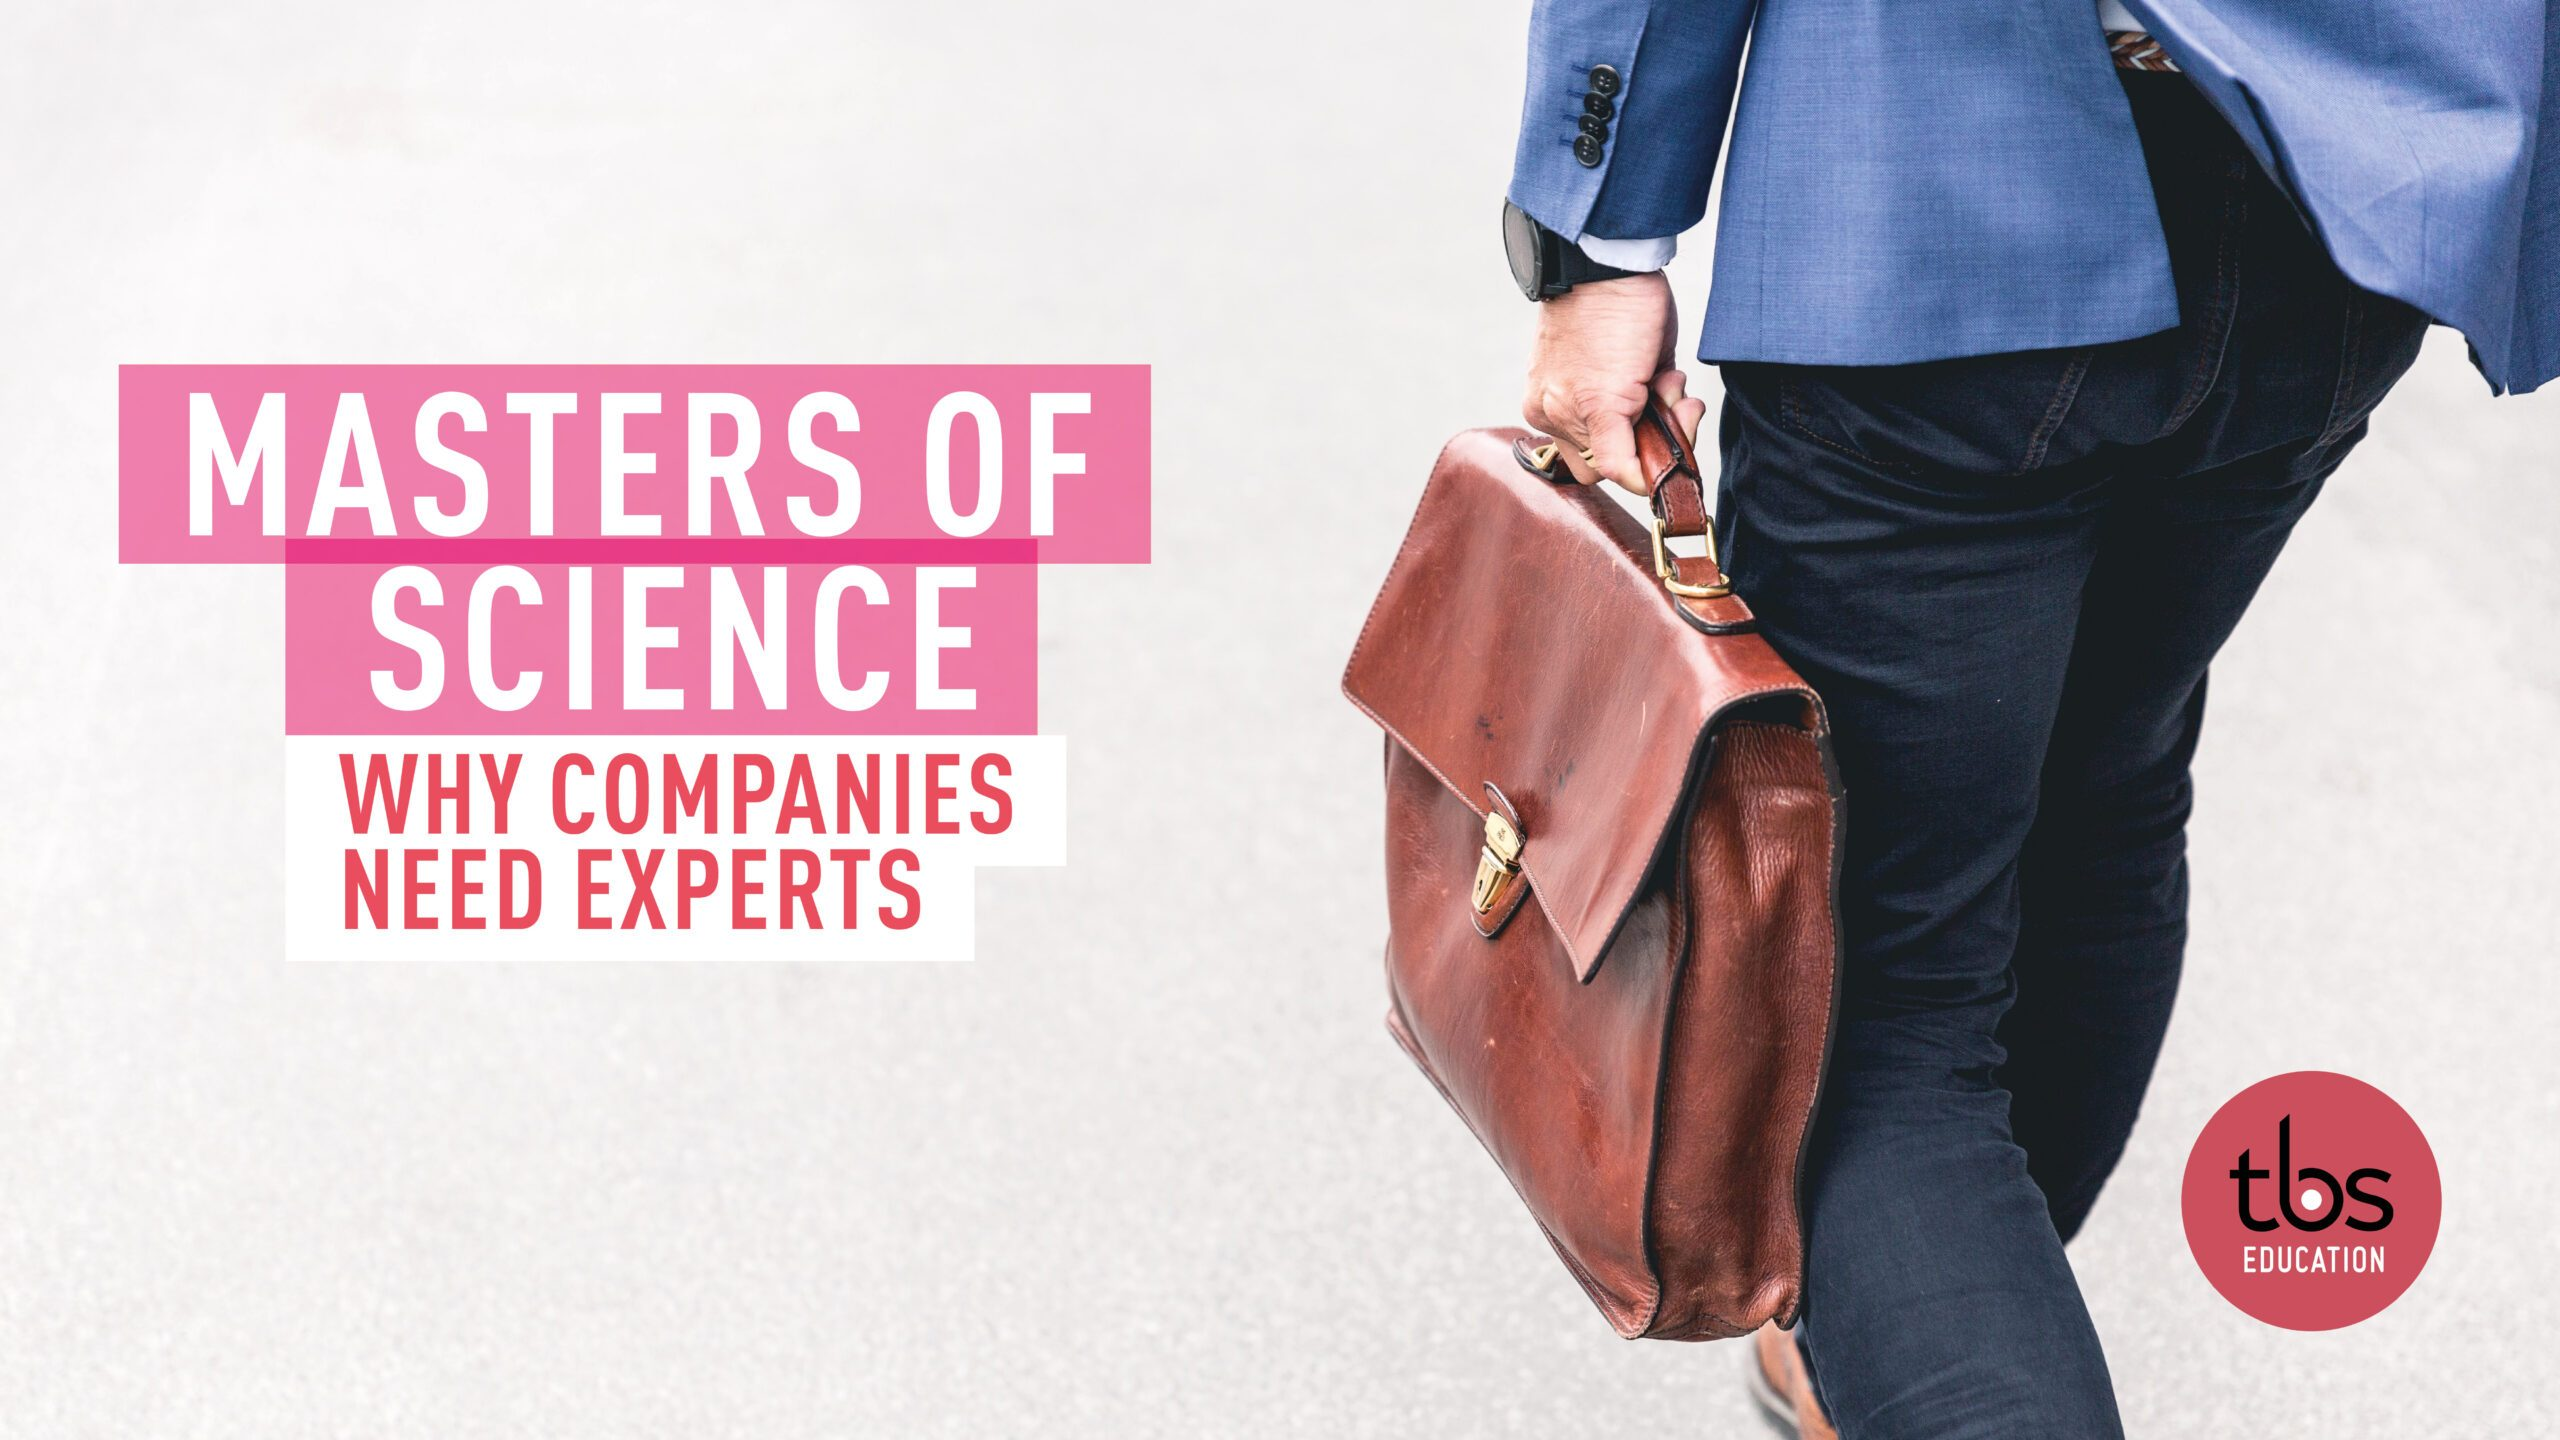 Msc Why Companies Need Experts 1920 1080